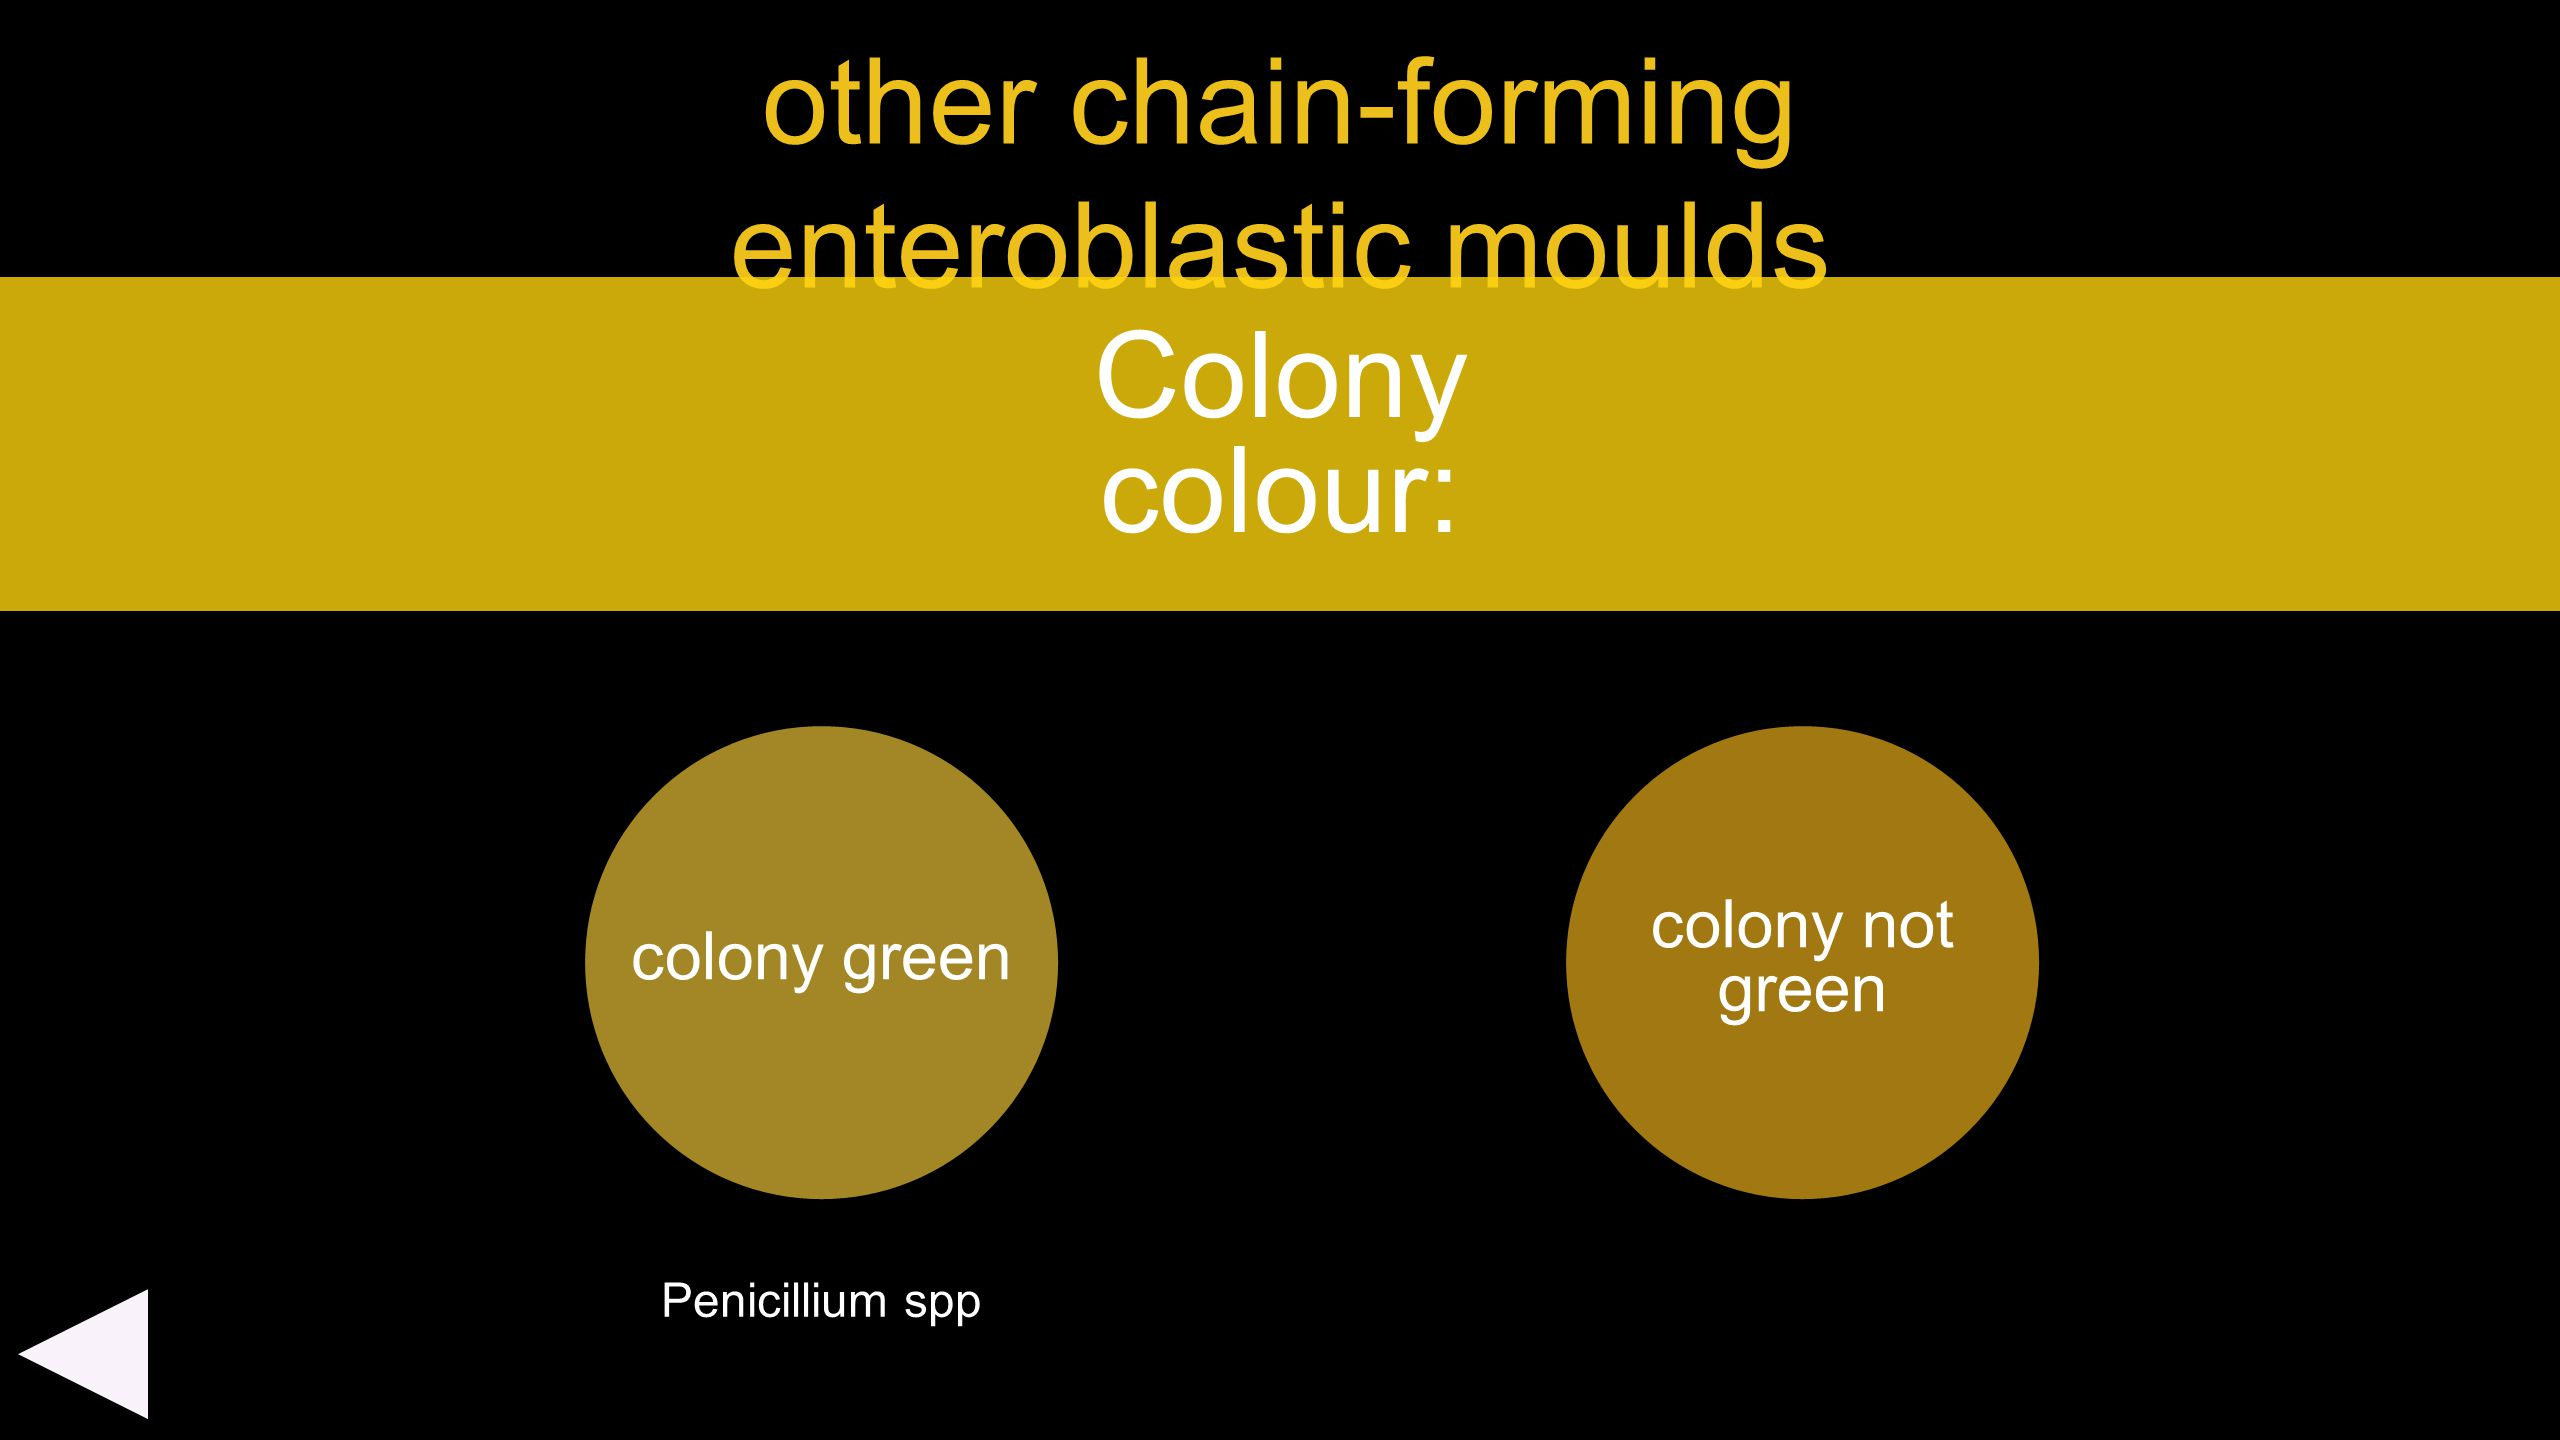 other chain-forming enteroblastic moulds